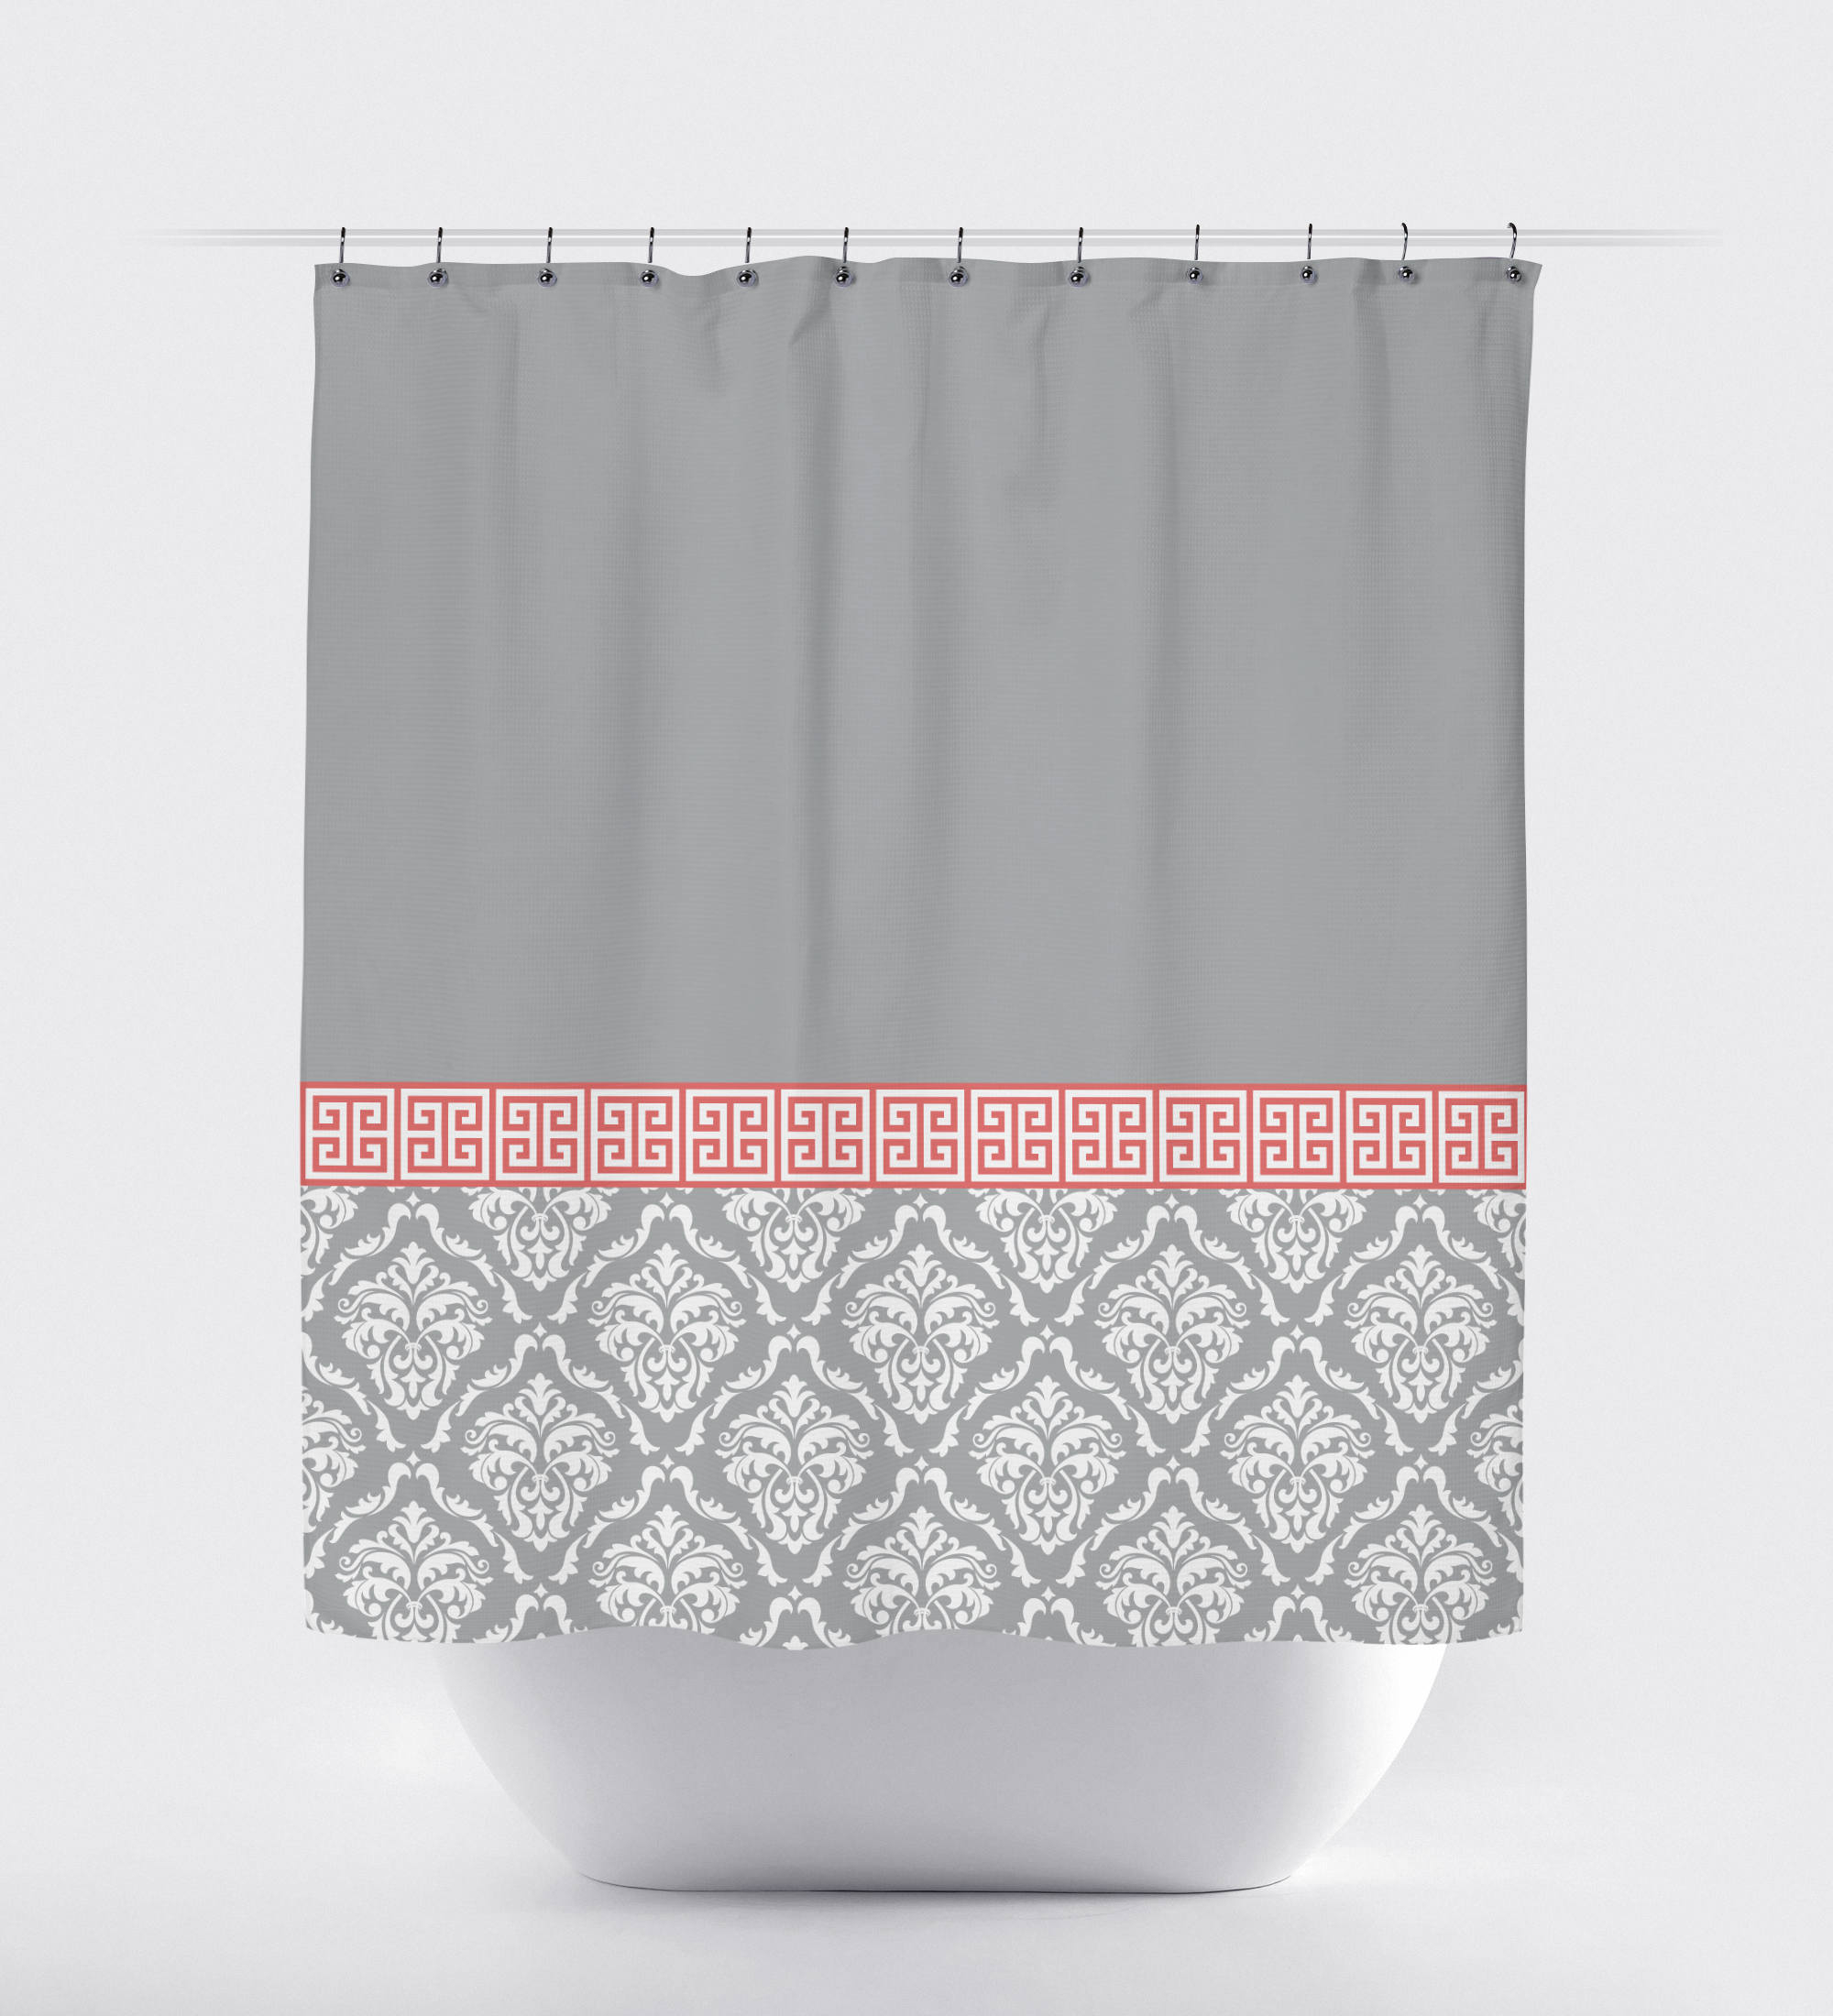 Damask And Greek Key Shower Curtain Hot Pink Black White Or with regard to measurements 2000 X 2200